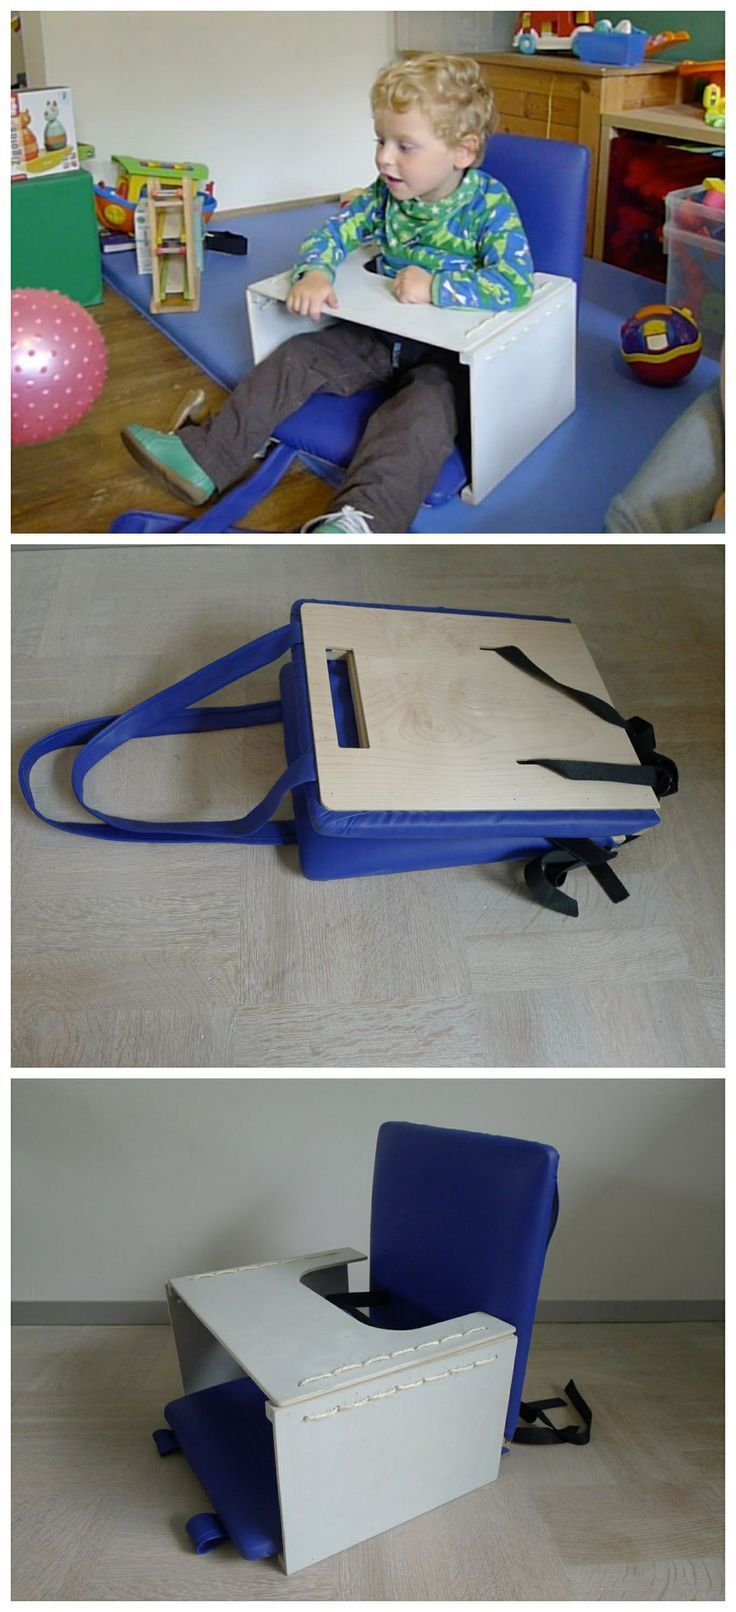 FleXiseat - Assisted Seat for Toddlers #assistive_tech #woodworking #children #cerebral_palsy